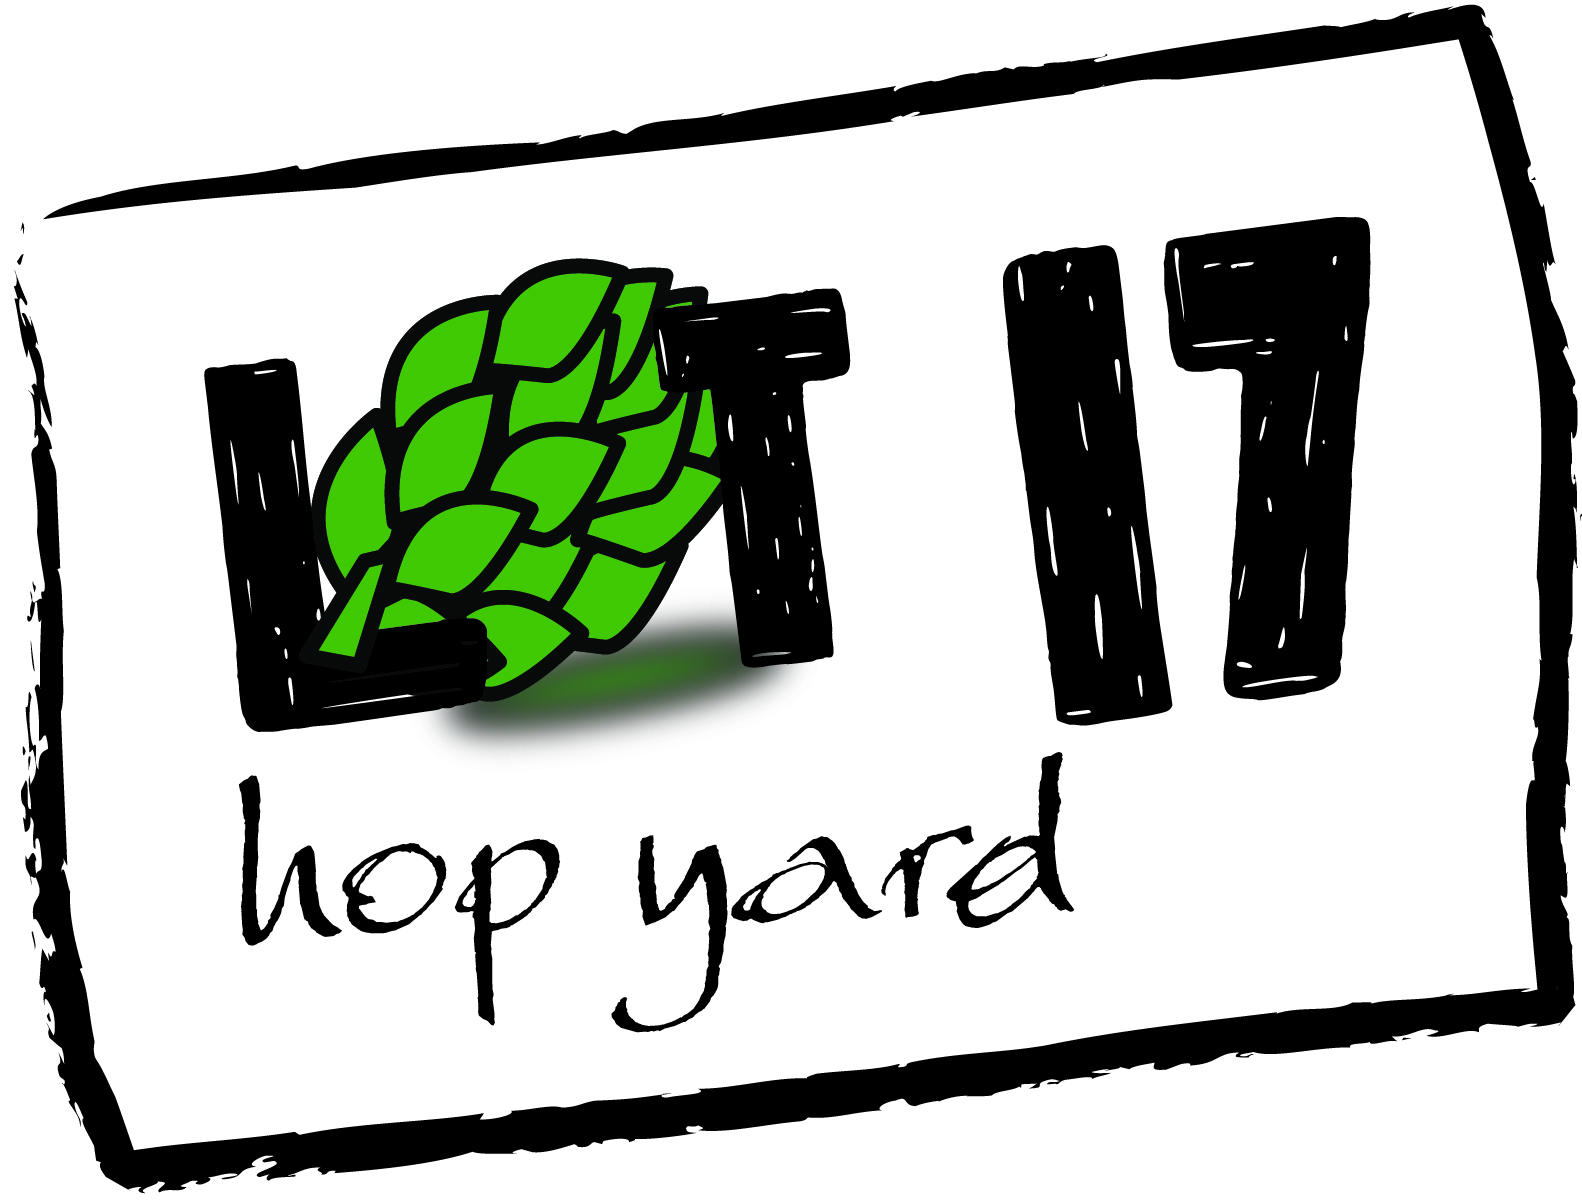 Lot 17 Hop Yard